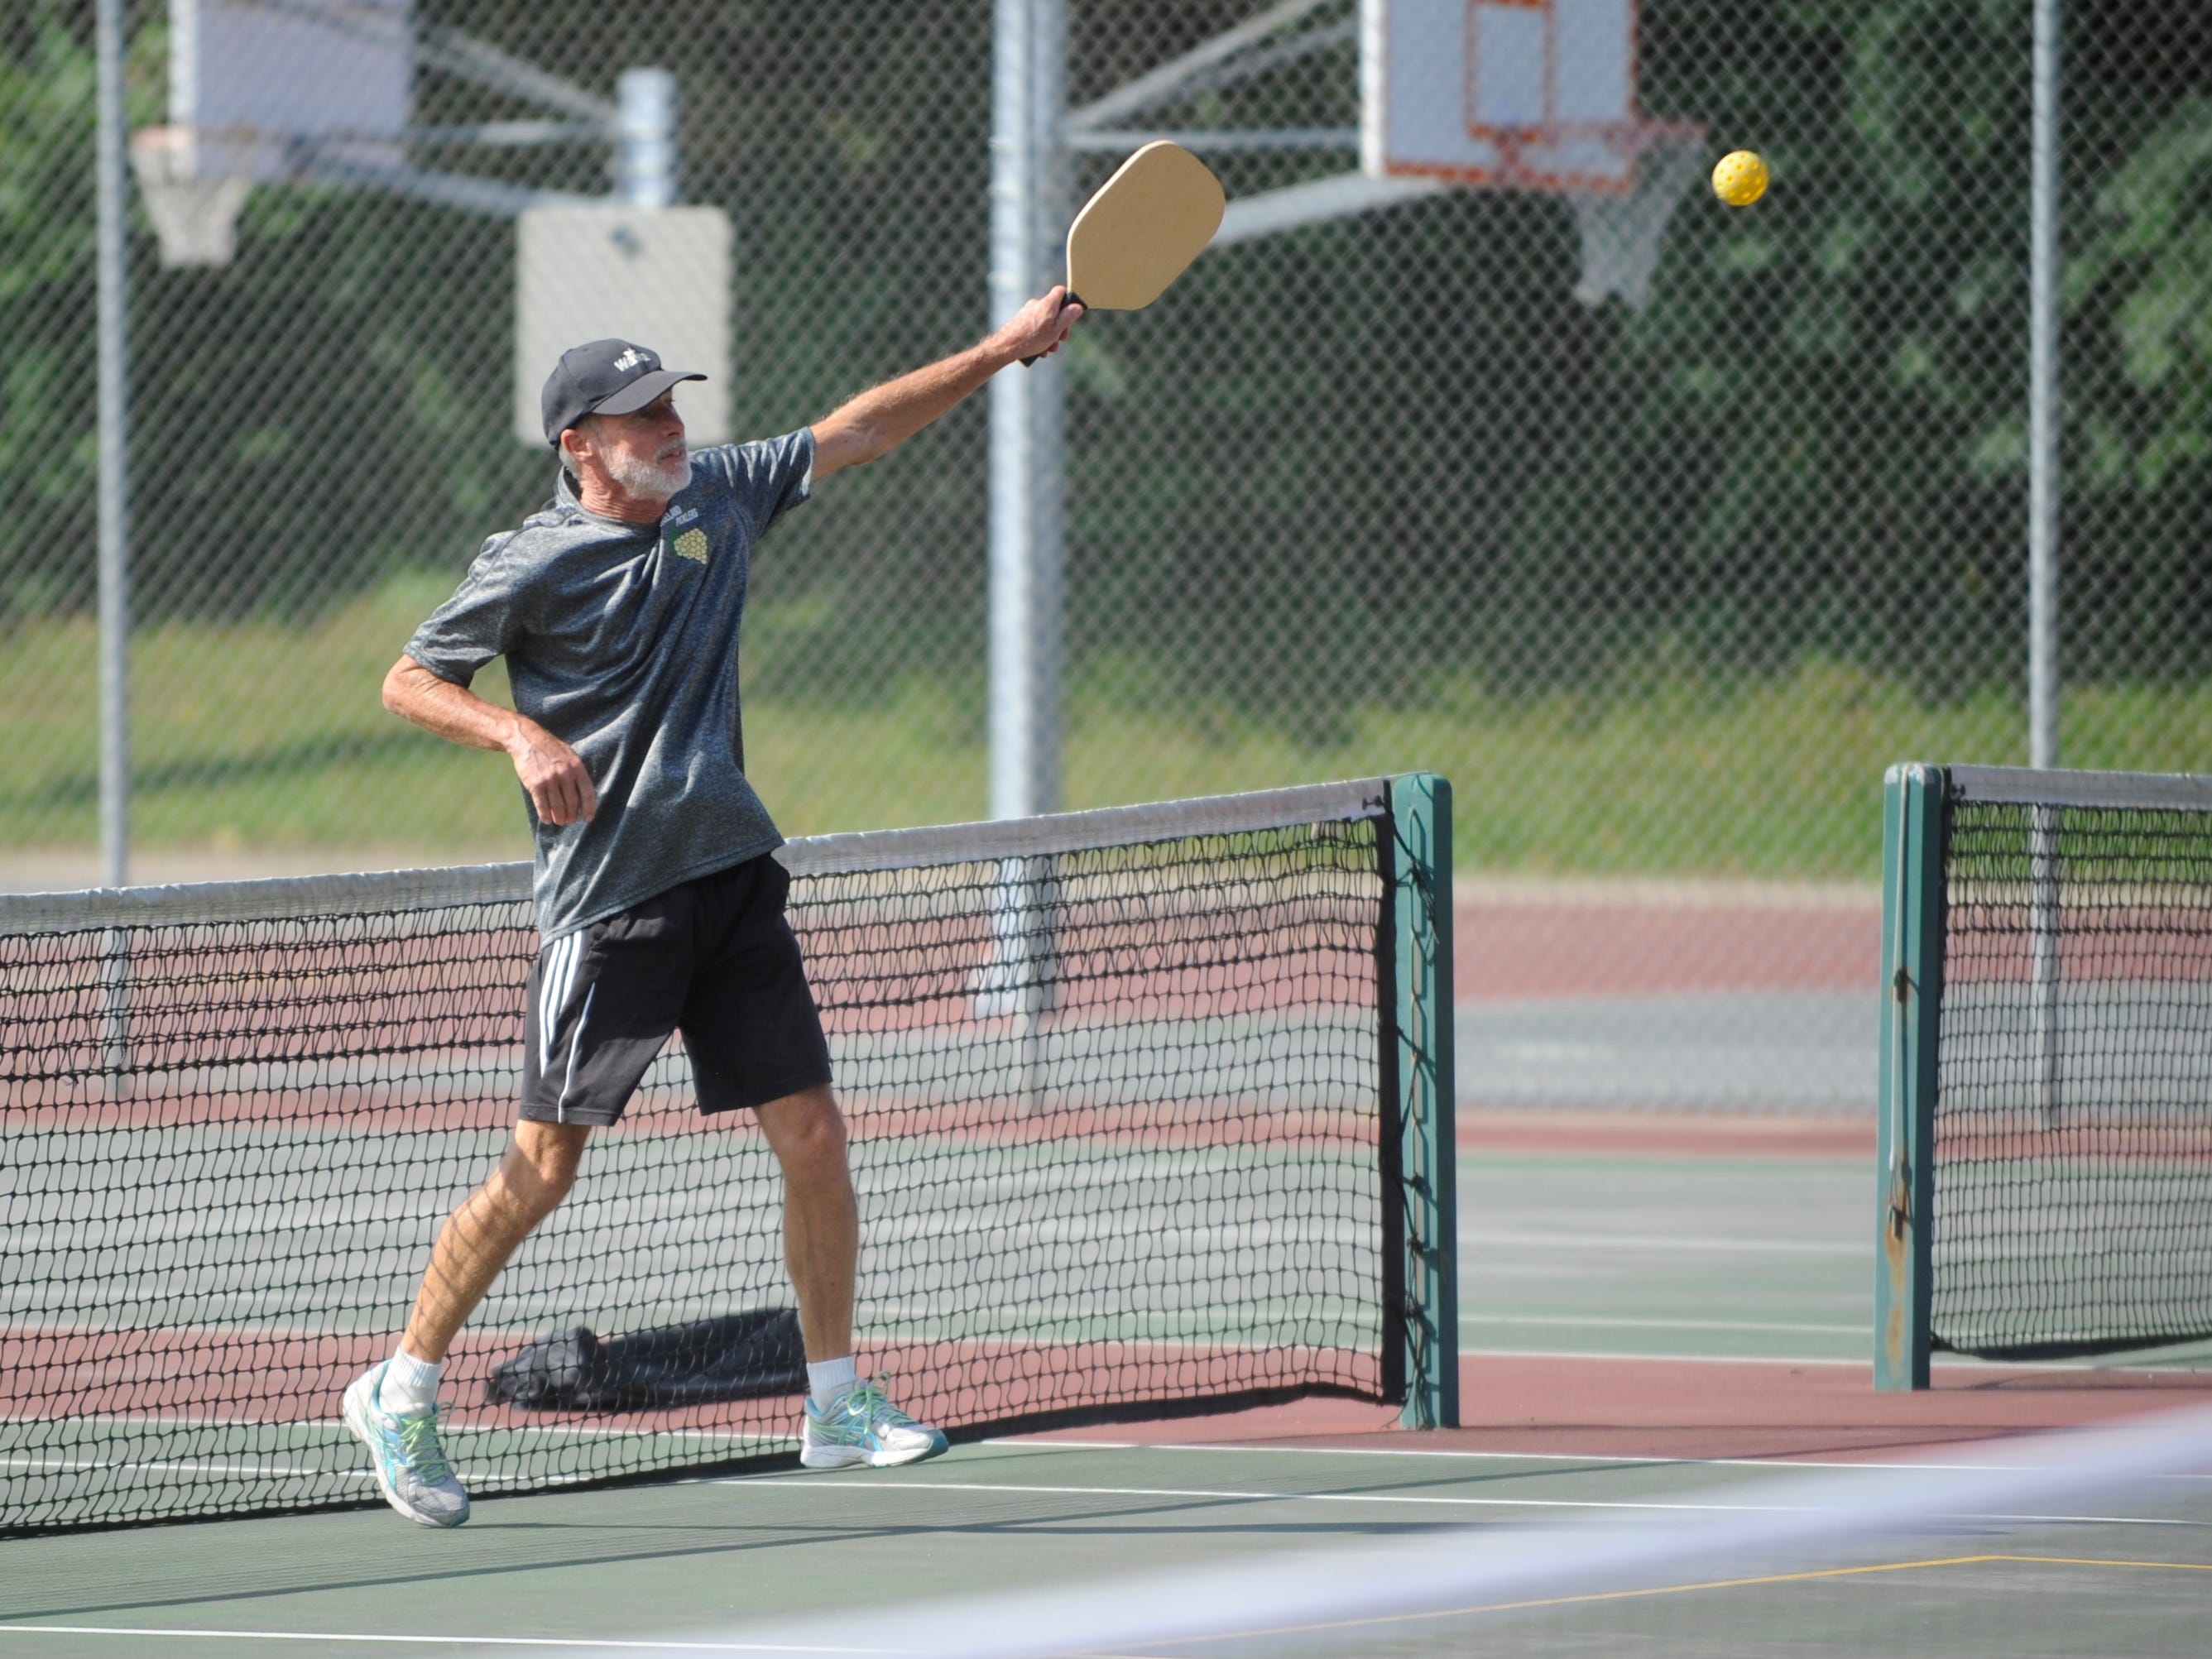 Bill Hayes, 64 of Vineland, hits the ball during a pickleball game at Pagluighi Park on Wednesday, October 3, 2018.